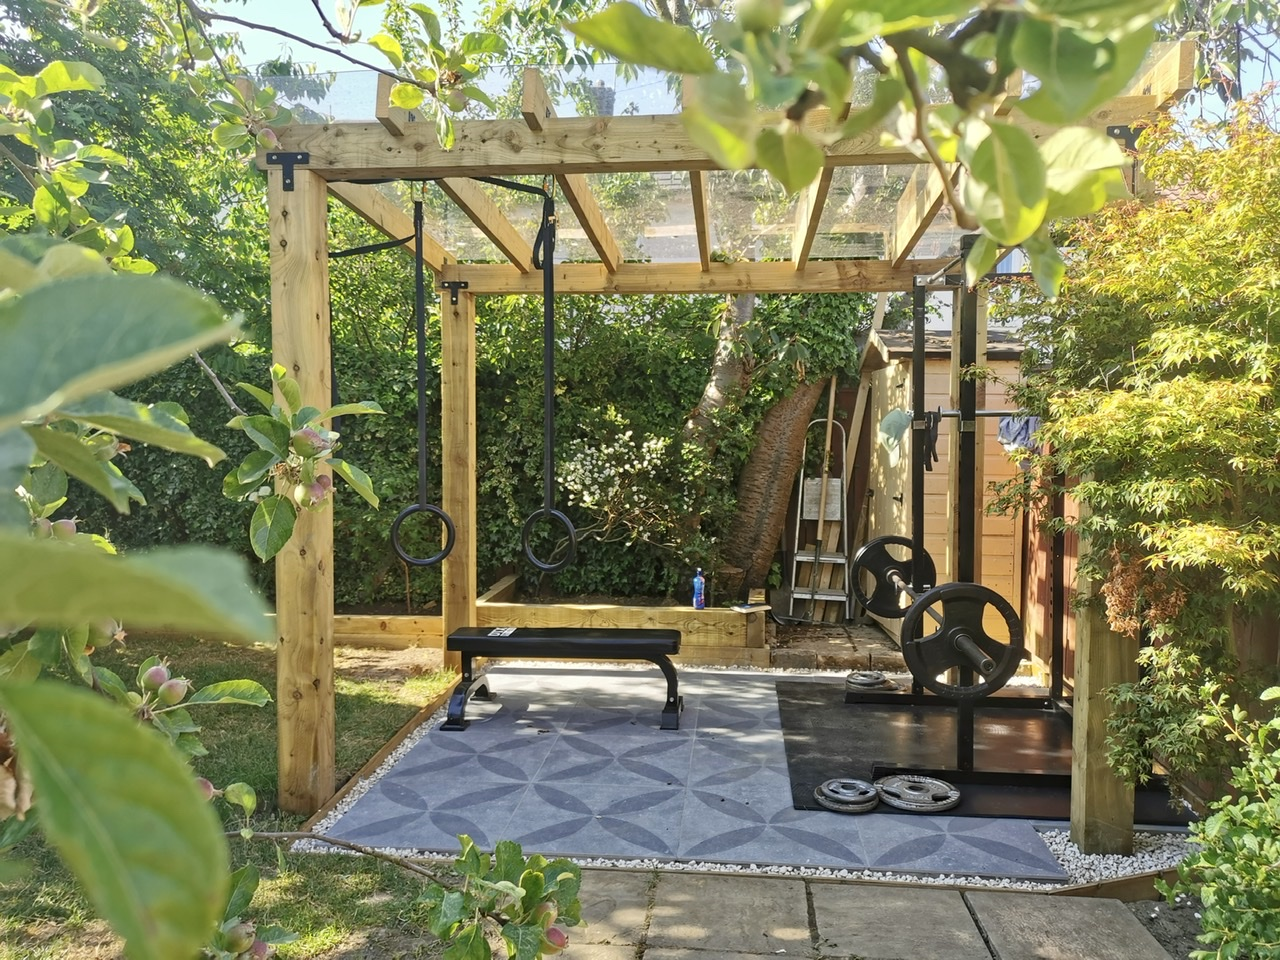 Outdoor garden gym with squat rack and gymnastic rings